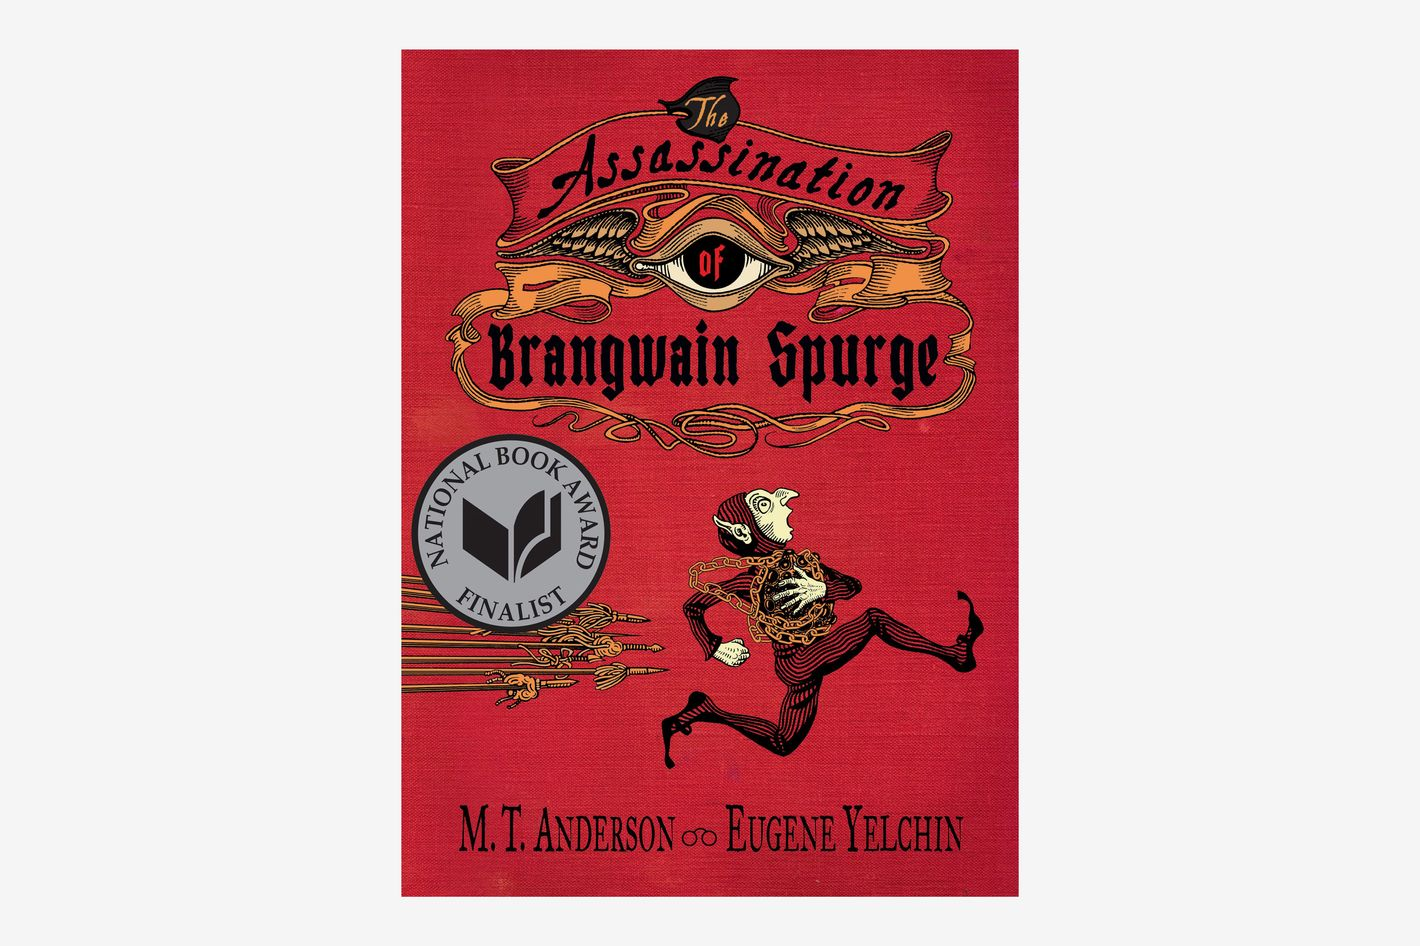 <em>The Assassination of Brangwain Spurge</em>, by M.T. Anderson and Eugene Yelchin